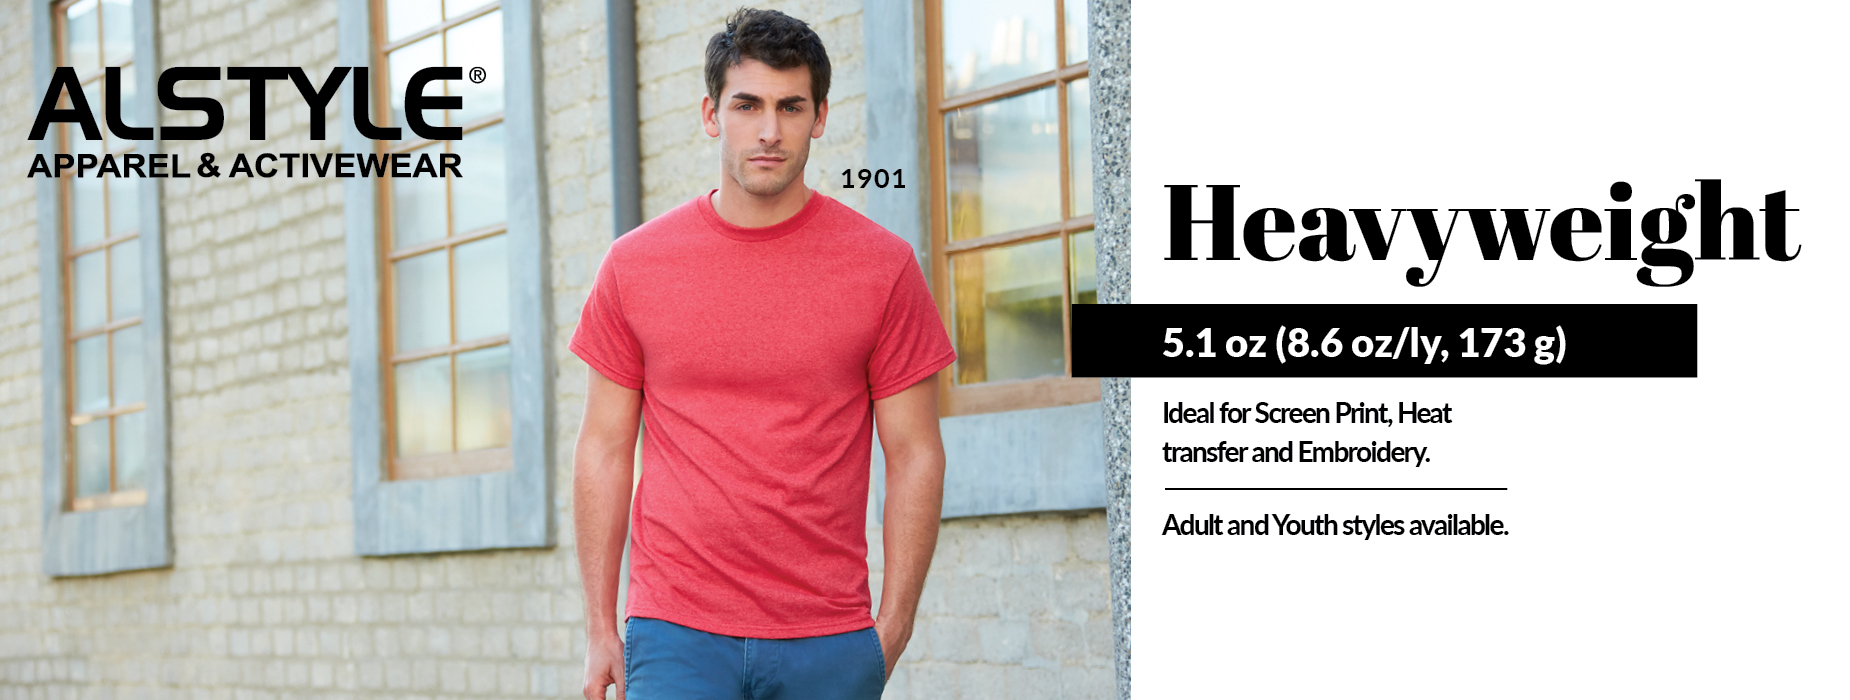 Blank Apparel Wholesale! Shop Heavyweight, View Heavyweight Collection from Alstyle Canada